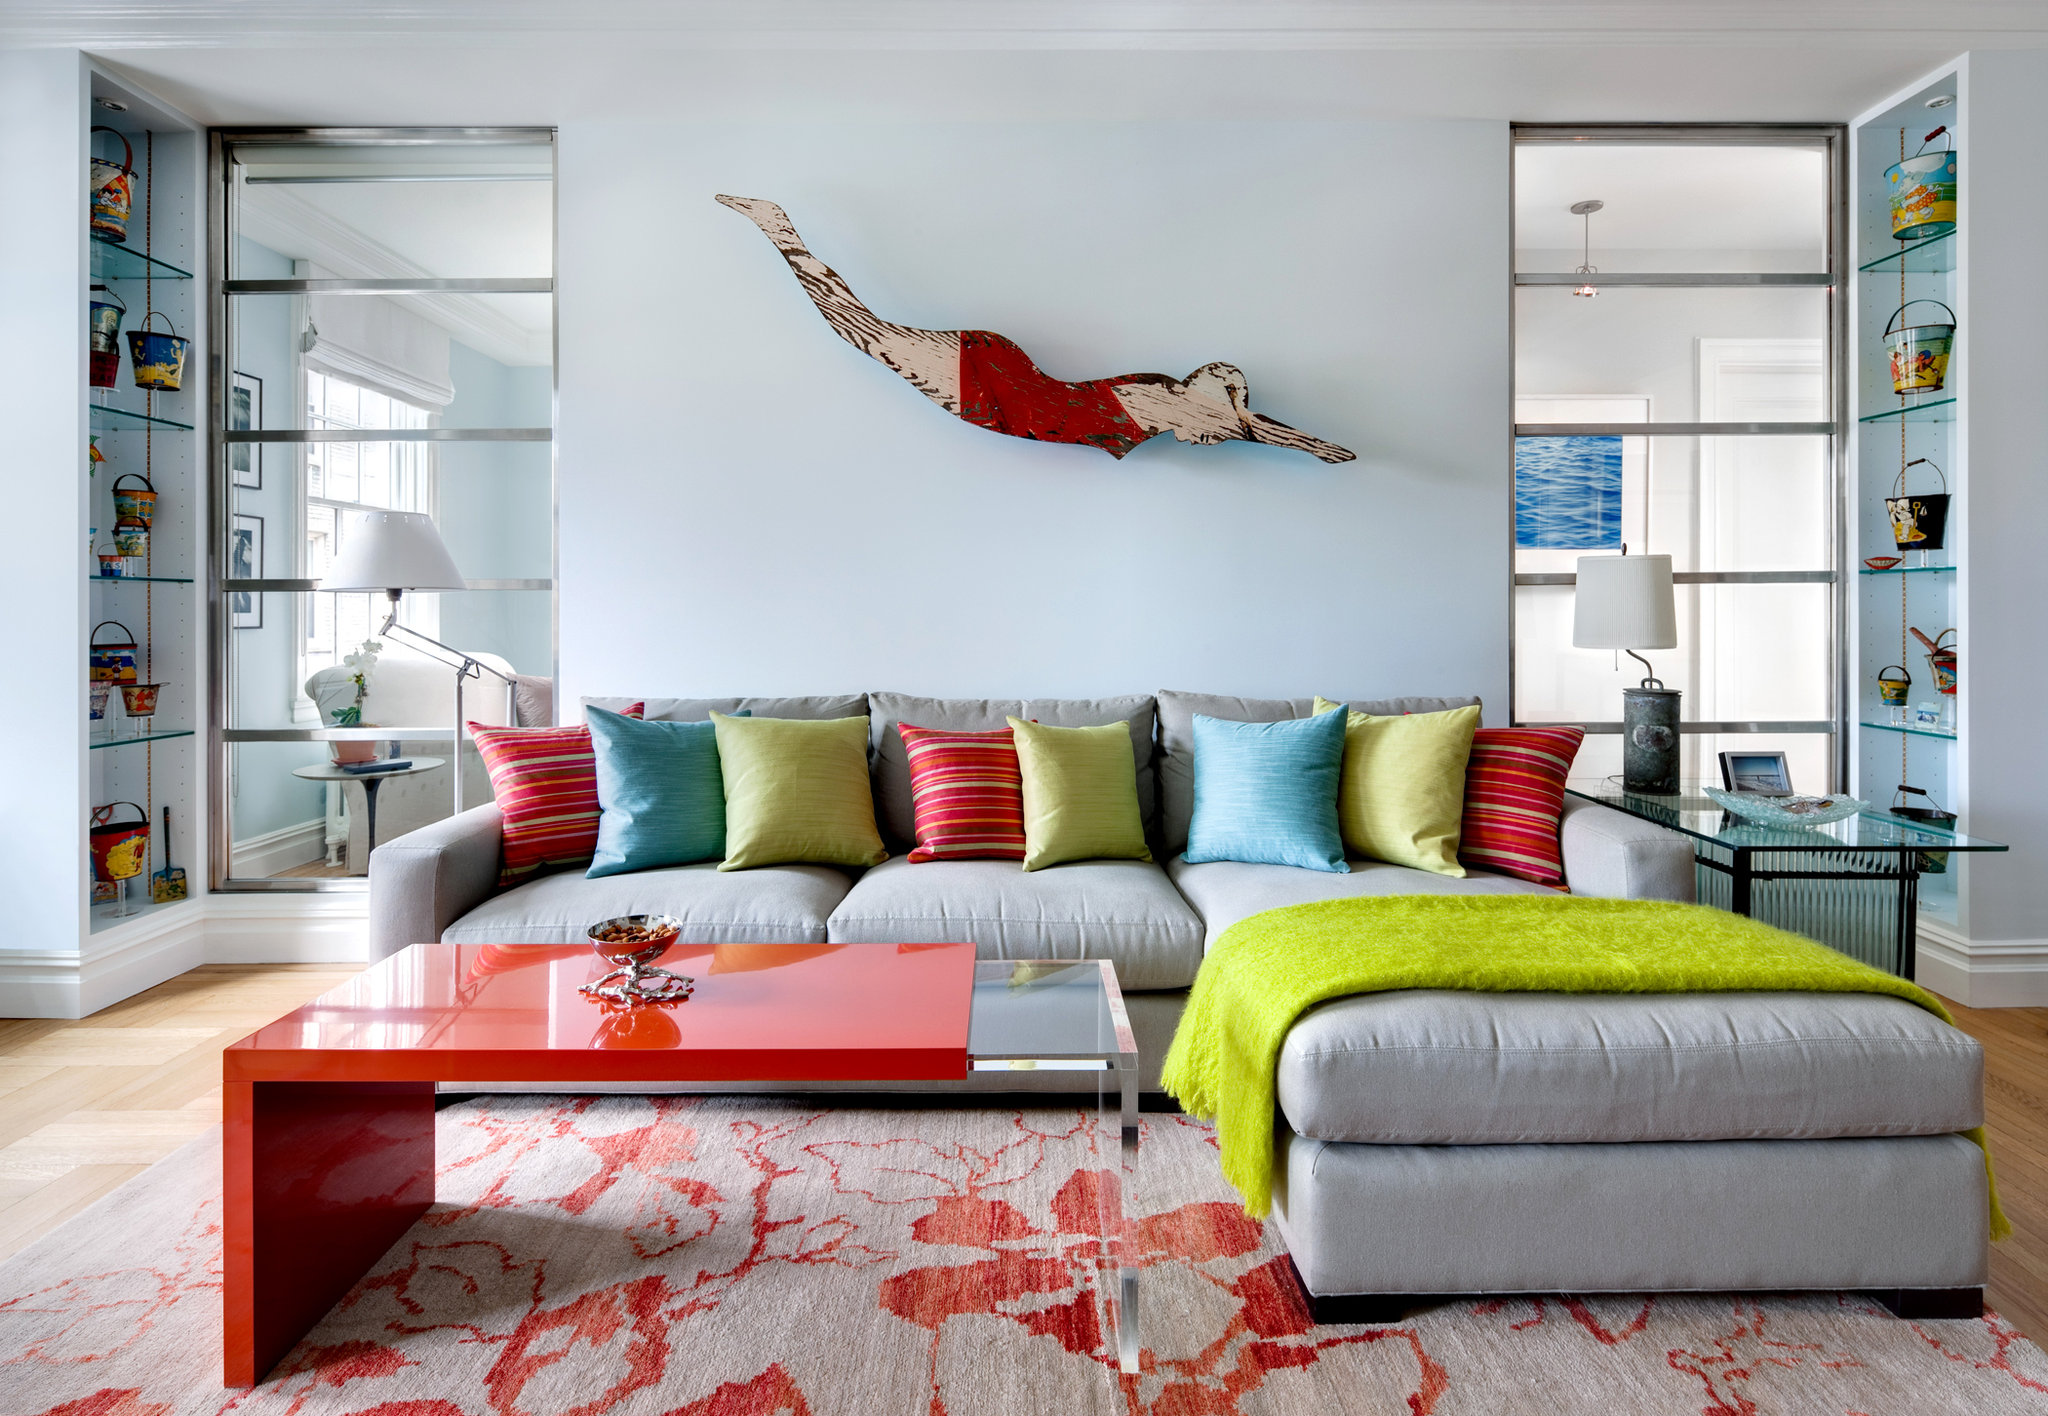 Ocean Themed Home Decor Bringing The Beach To The Upper West Side The New York Times